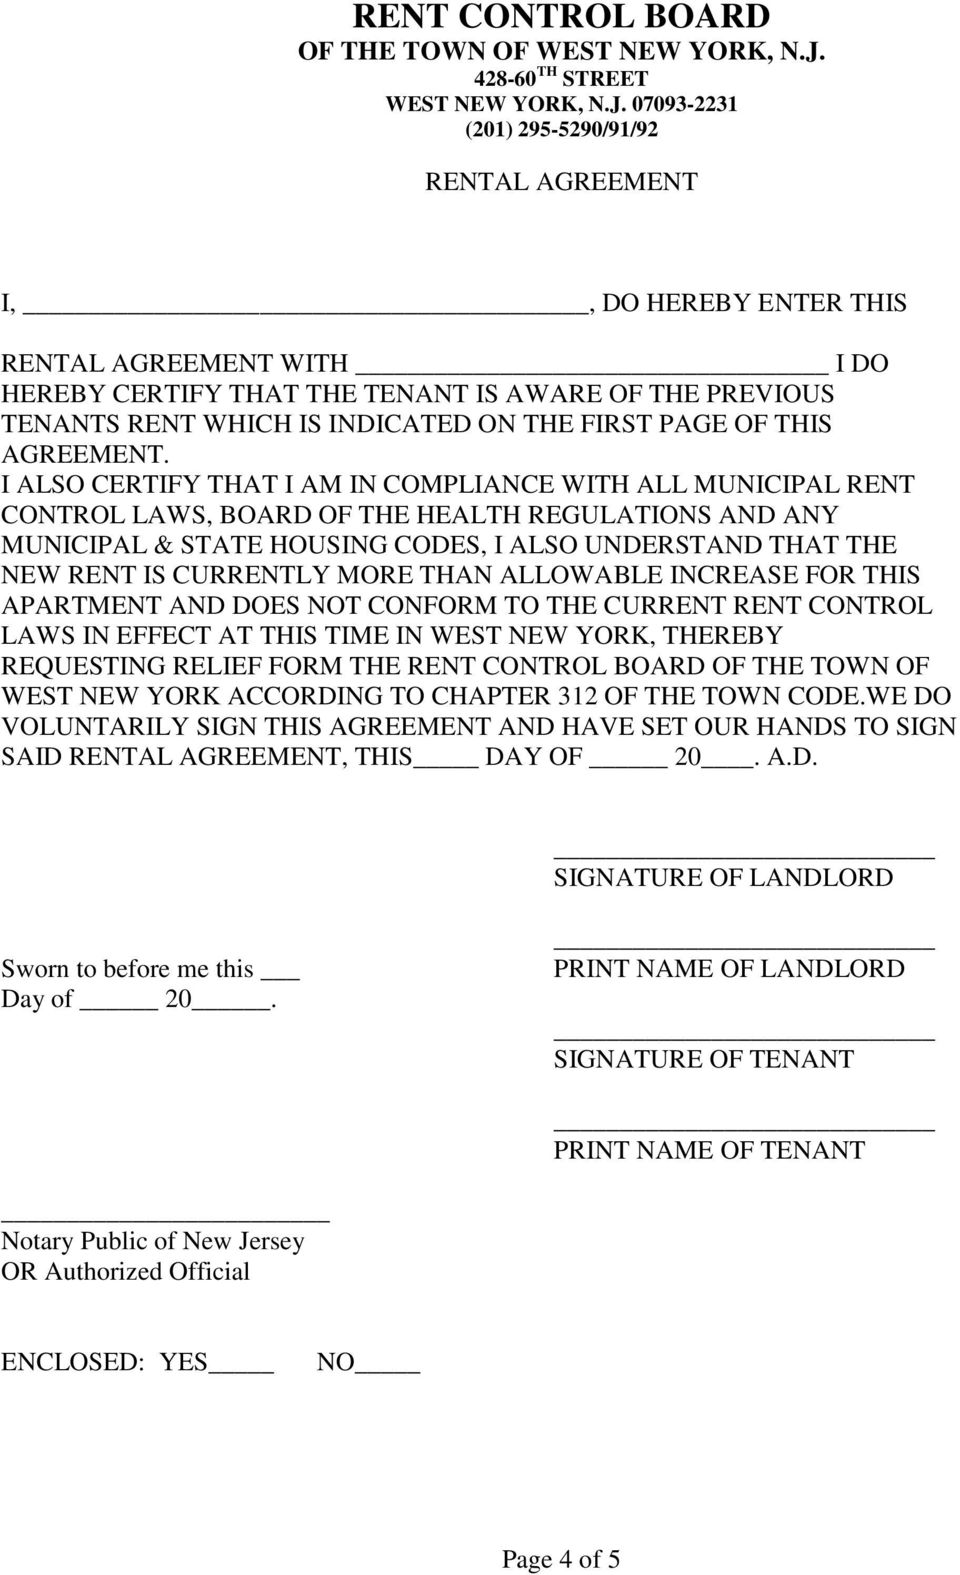 MORE THAN ALLOWABLE INCREASE FOR THIS APARTMENT AND DOES NOT CONFORM TO THE CURRENT RENT CONTROL LAWS IN EFFECT AT THIS TIME IN WEST NEW YORK, THEREBY REQUESTING RELIEF FORM THE RENT CONTROL BOARD OF